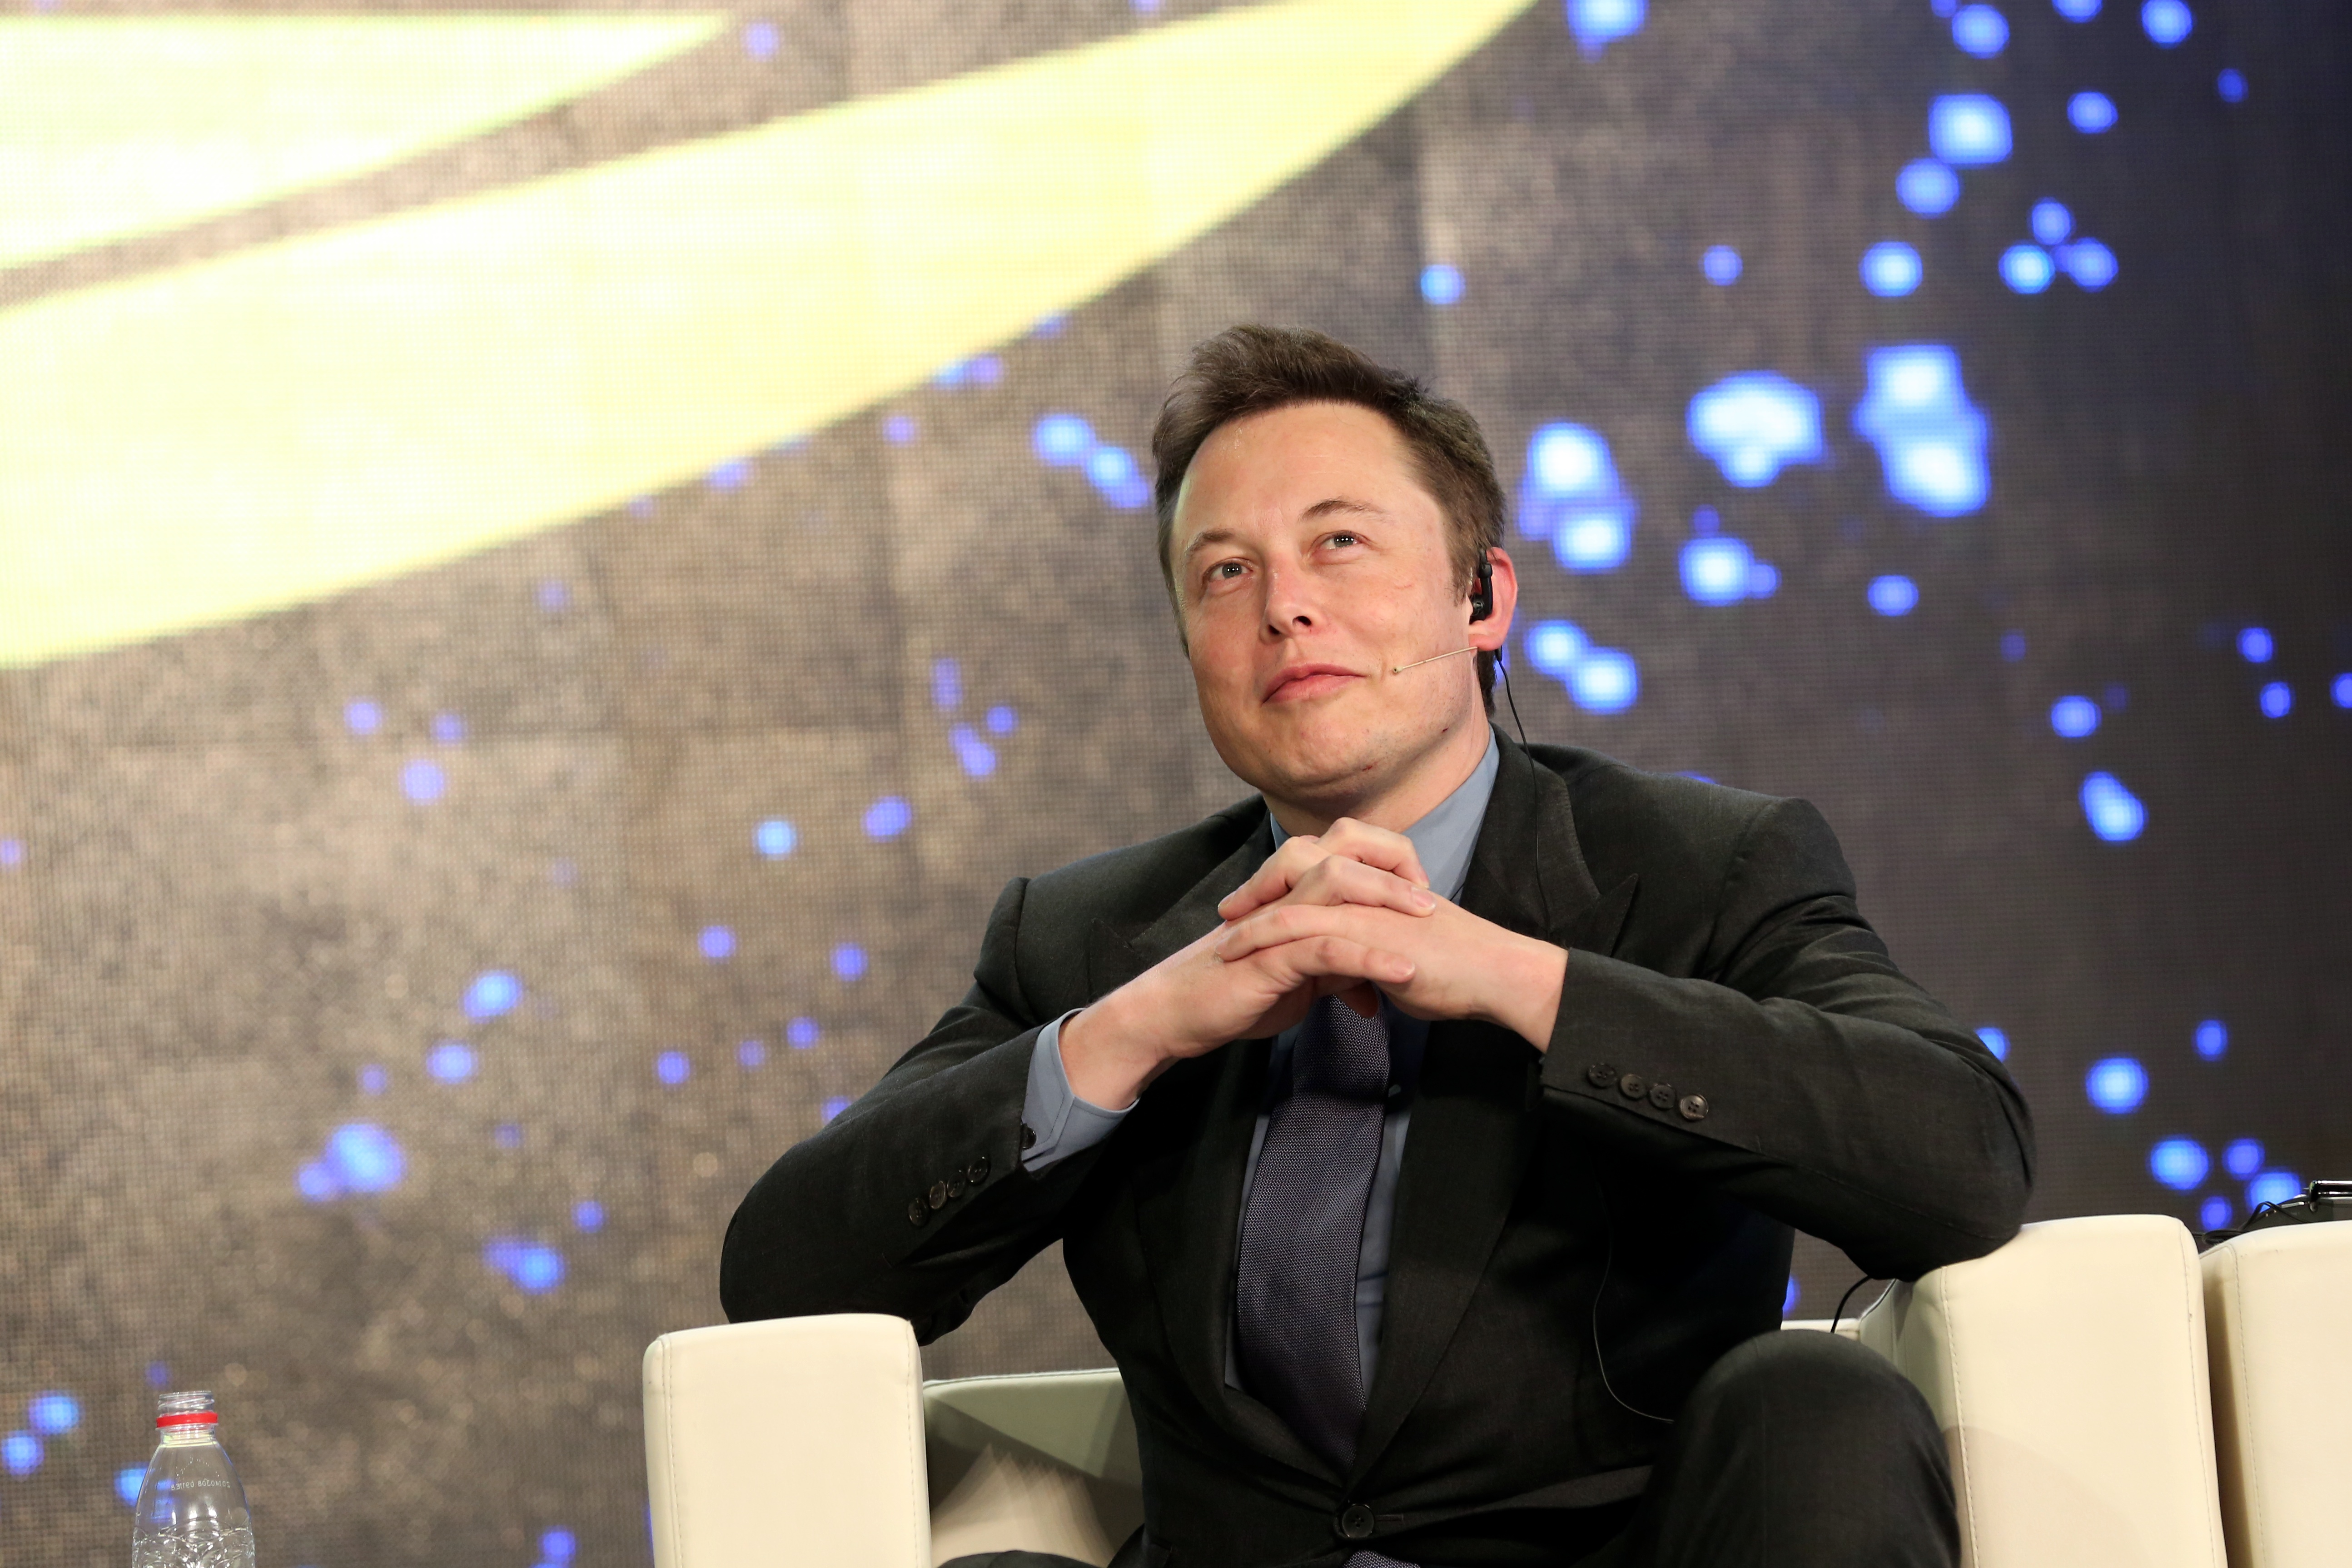 CEO of Tesla Motors Elon Musk attends the television show  Dialogue  taping at Zhongshan Park in Beijing on April 21, 2014.